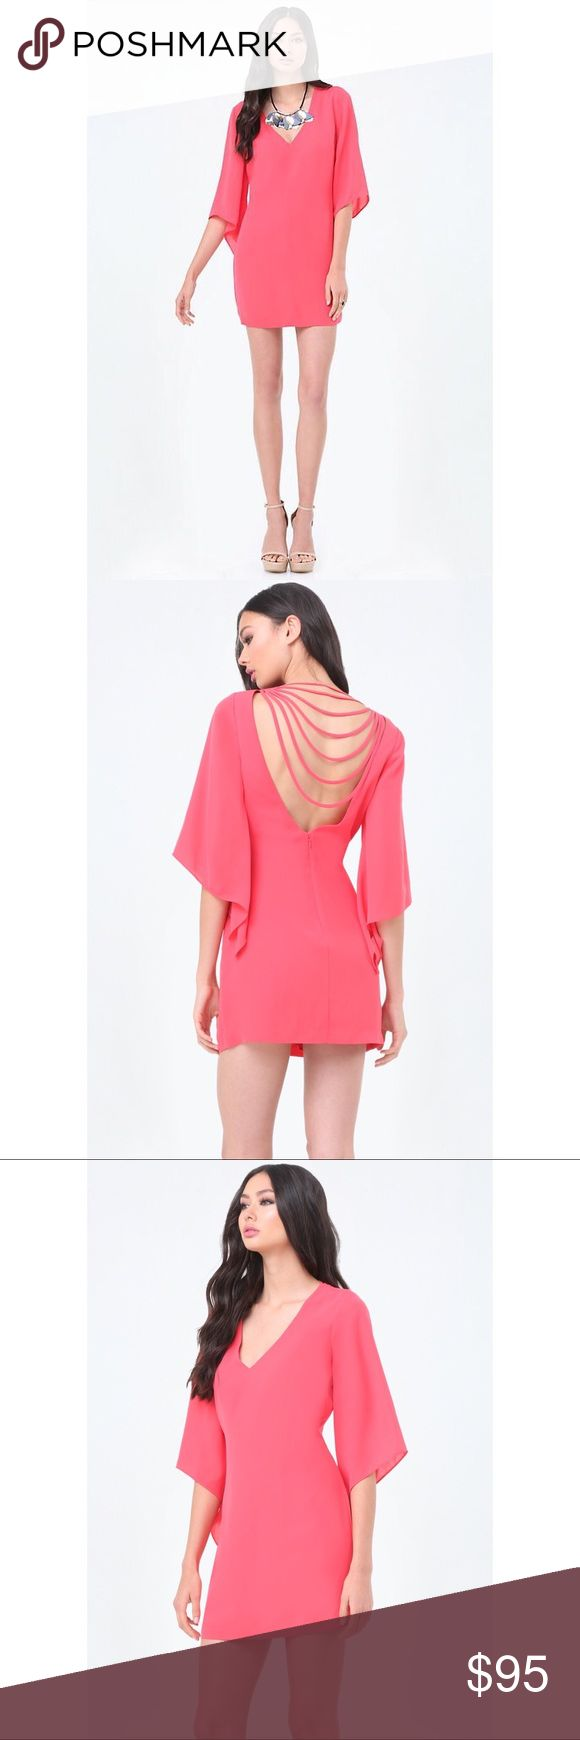 """FLARE SLEEVE SHIFT DRESS Beautiful flare sleeve, hot pink dress. Perfect for a night out! Bought for an event and never ended up wearing it. I'm 5'4"""" for height reference bebe Dresses"""